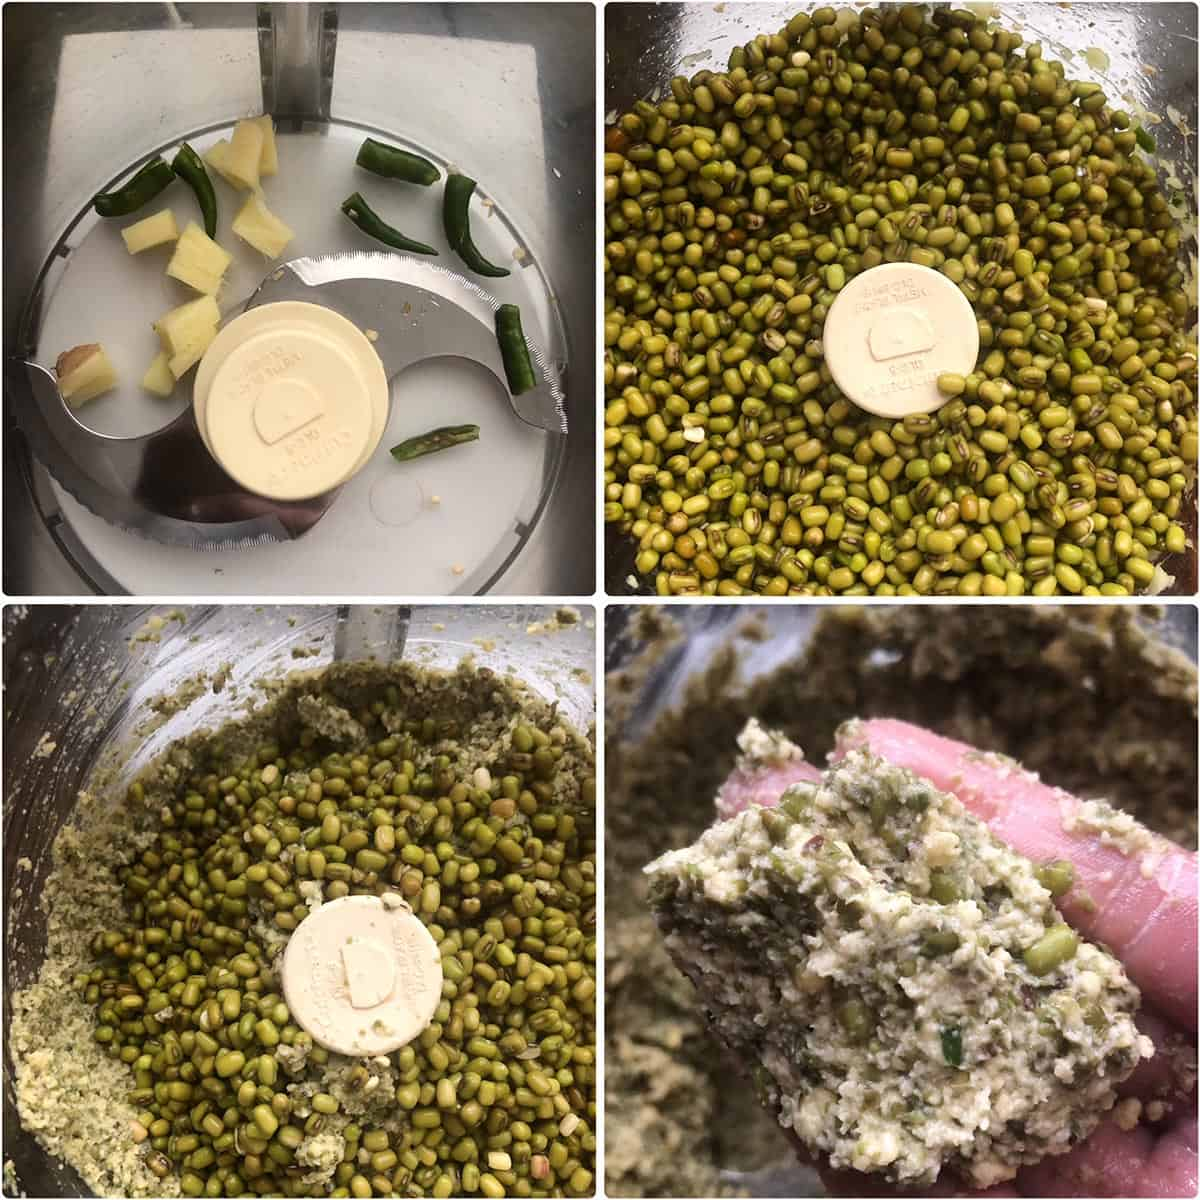 Mung beans being ground to a coarse paste in a food processor along with ginger and green chilies